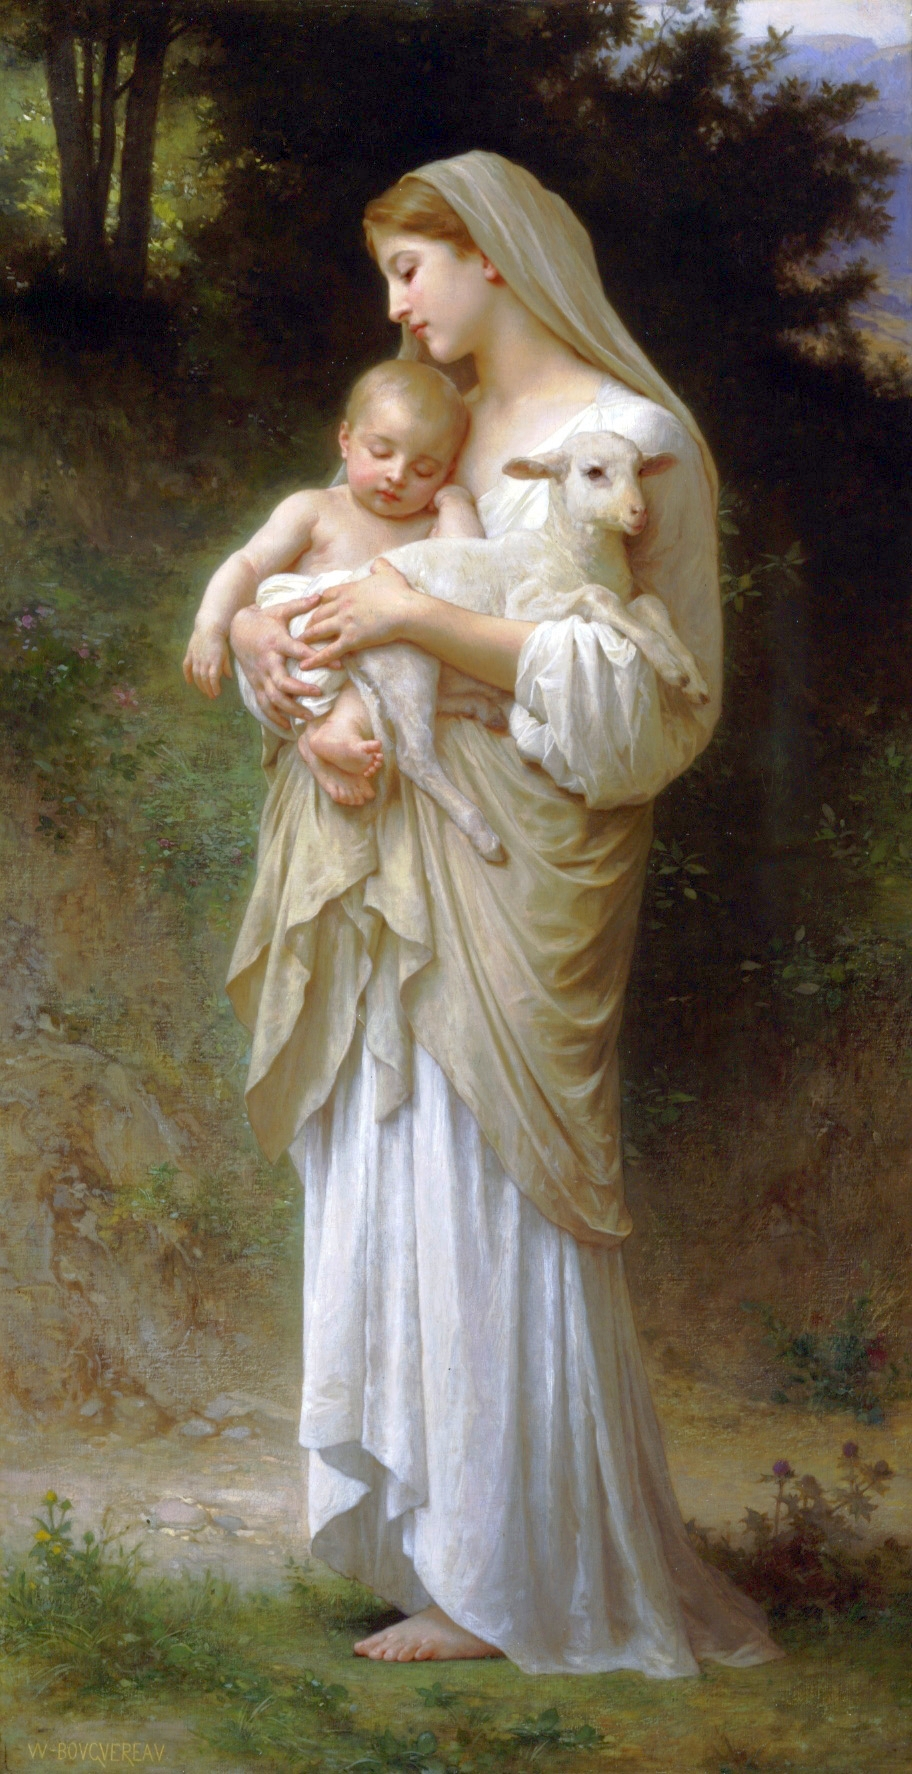 03. Innocence (1893) William-Adolphe Bouguereau.jpg